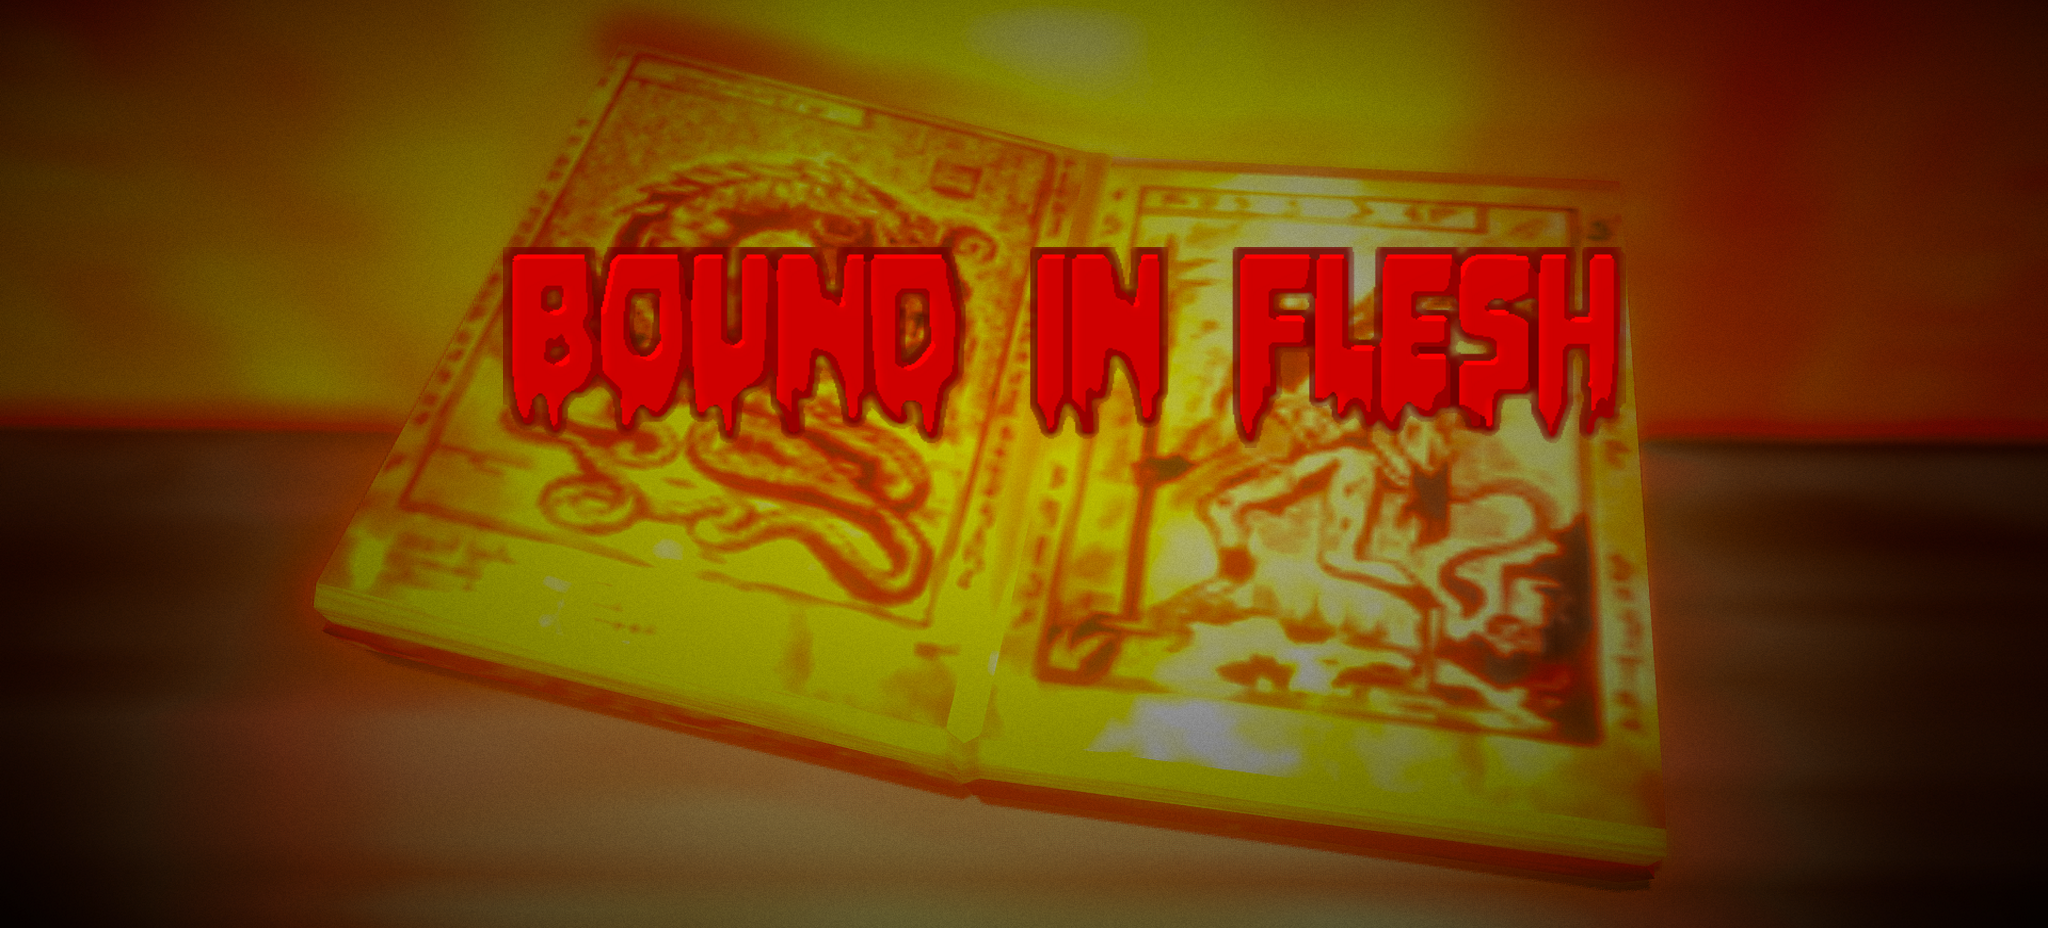 Bound in Flesh at the Origins of Evil Never Dies